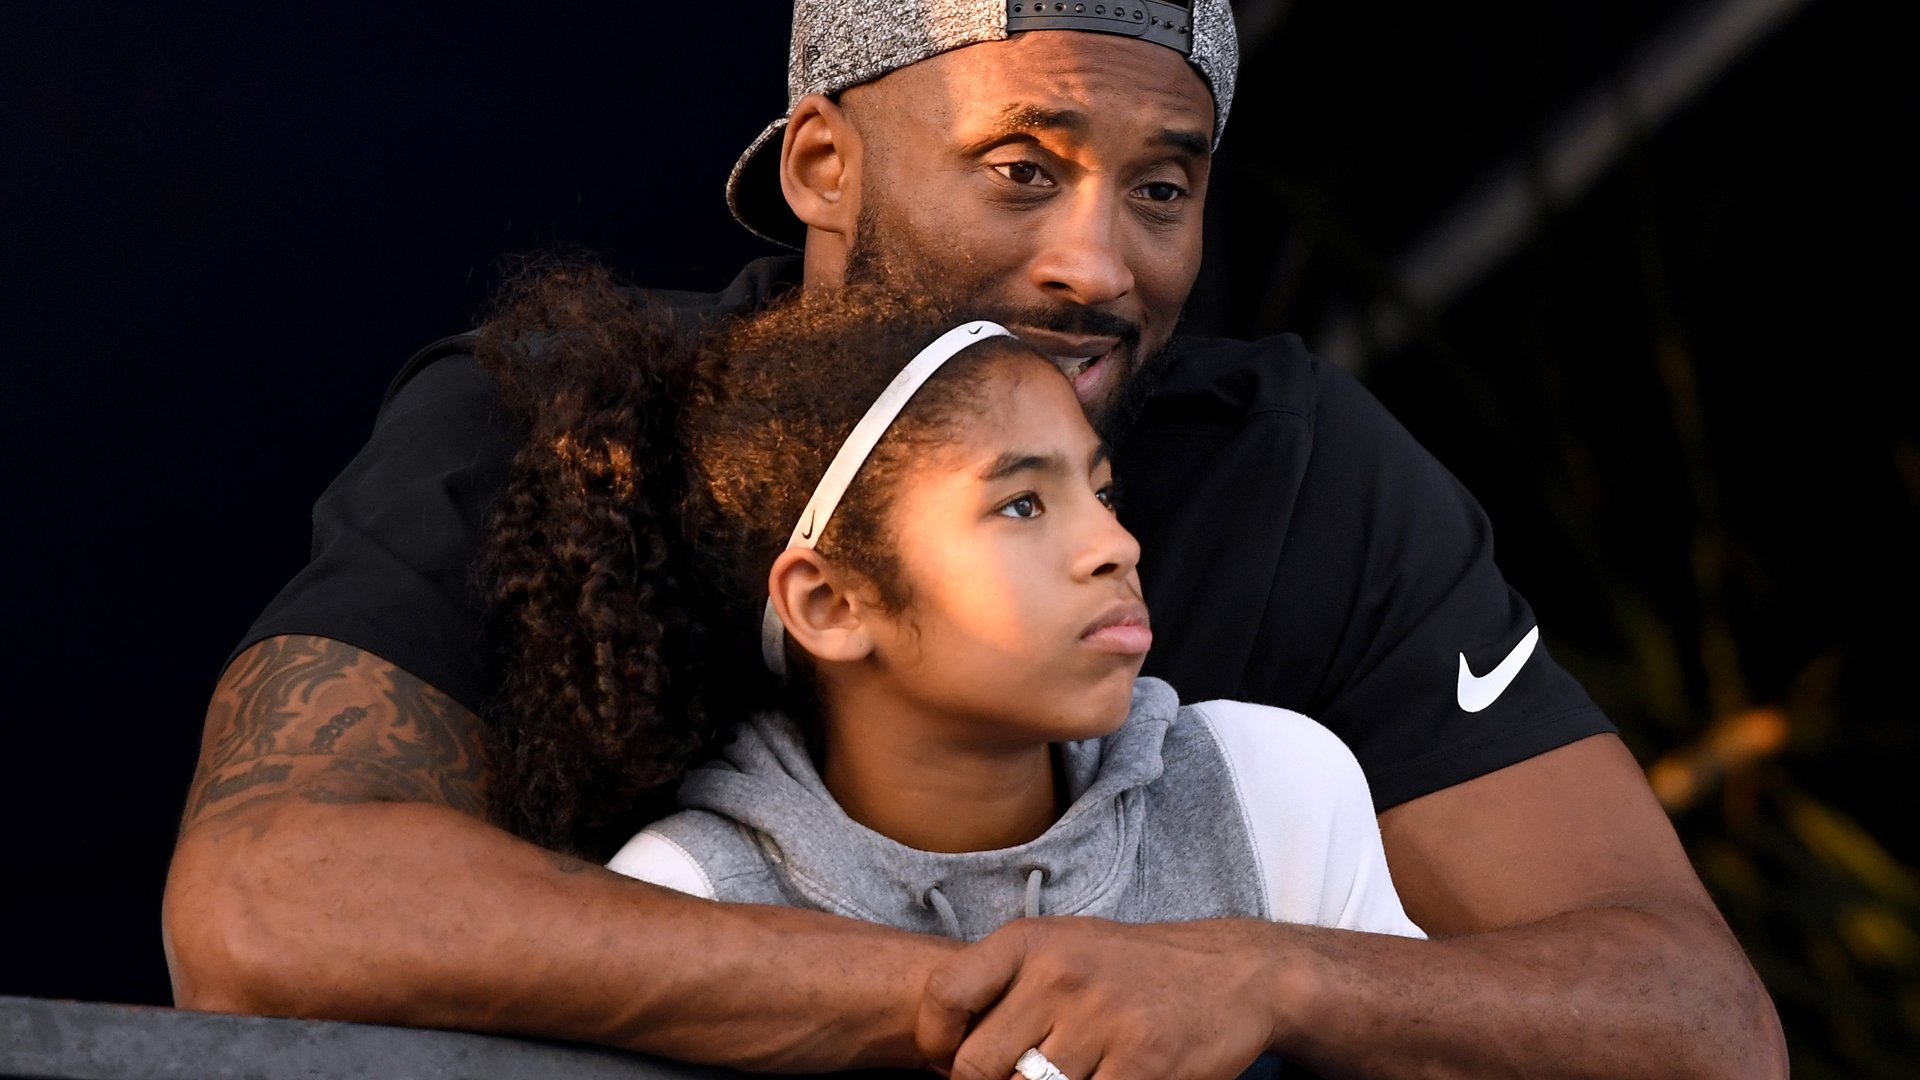 Kobe Bryant and daughter Gianna Bryant watch the Phillips 66 National Swimming Championships at the Woollett Aquatics Center on July 26, 2018 in Irvine. (Credit: Harry How/Getty Images)